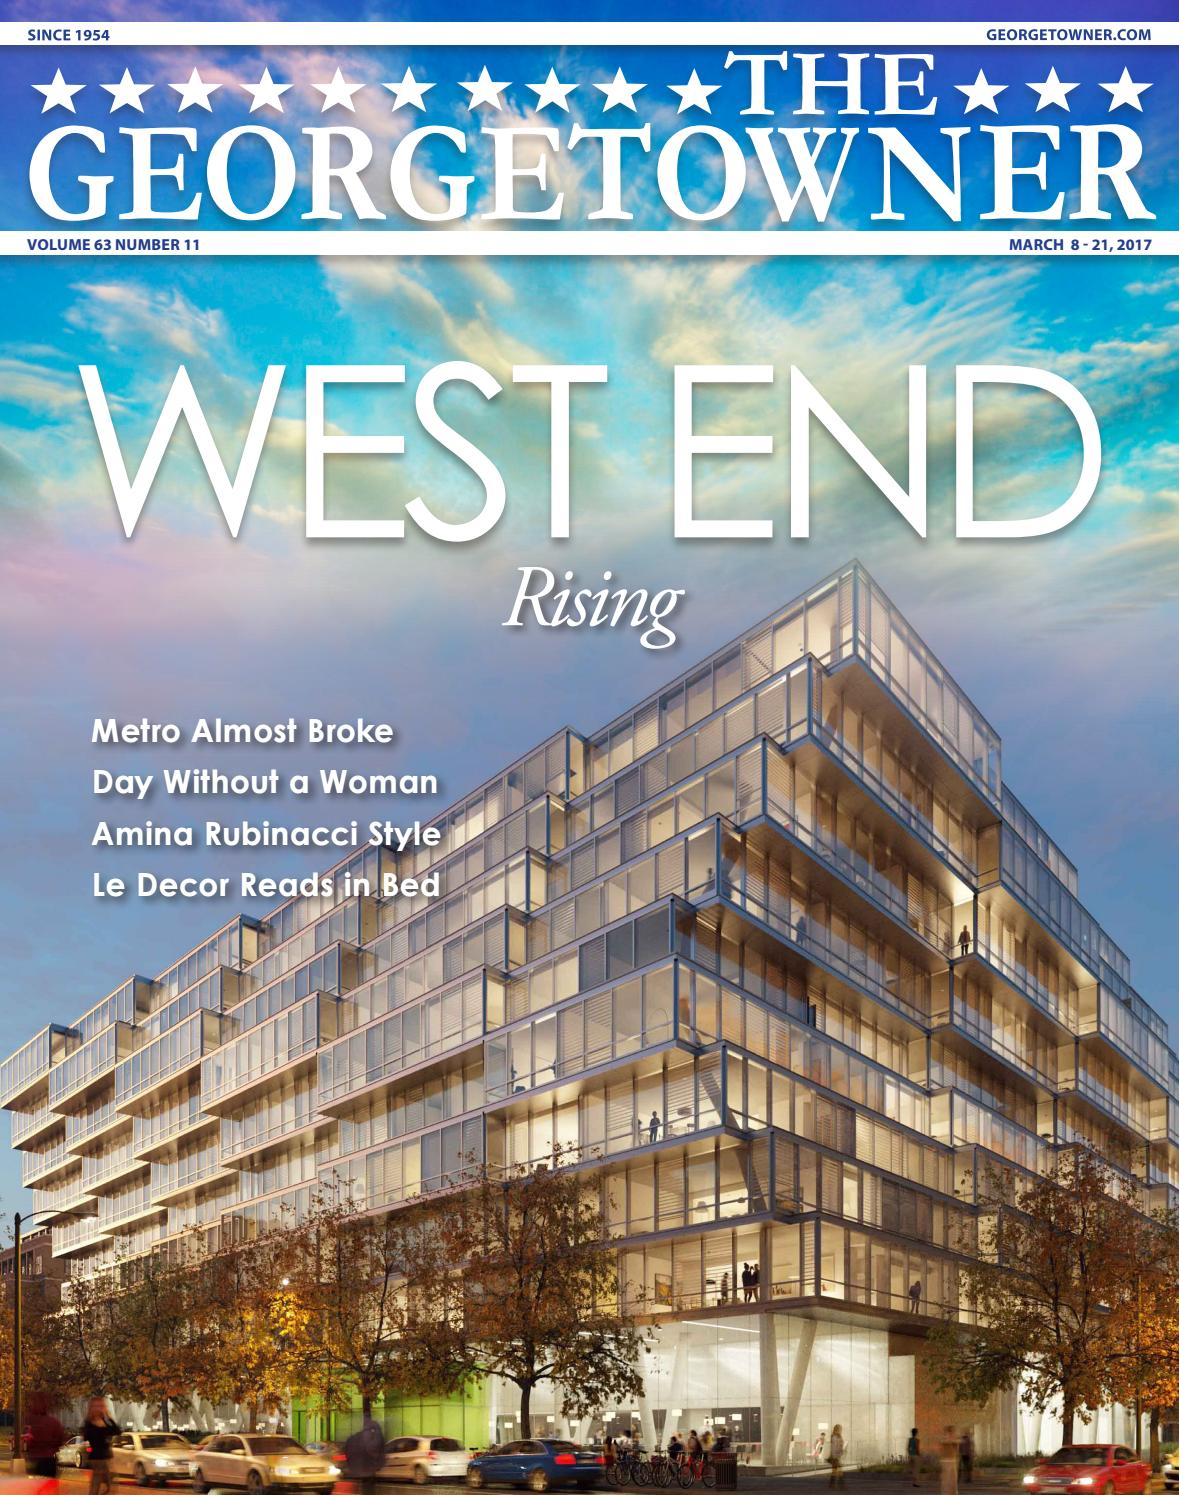 the georgetowner u0027s march 8 2017 issue by georgetown media group